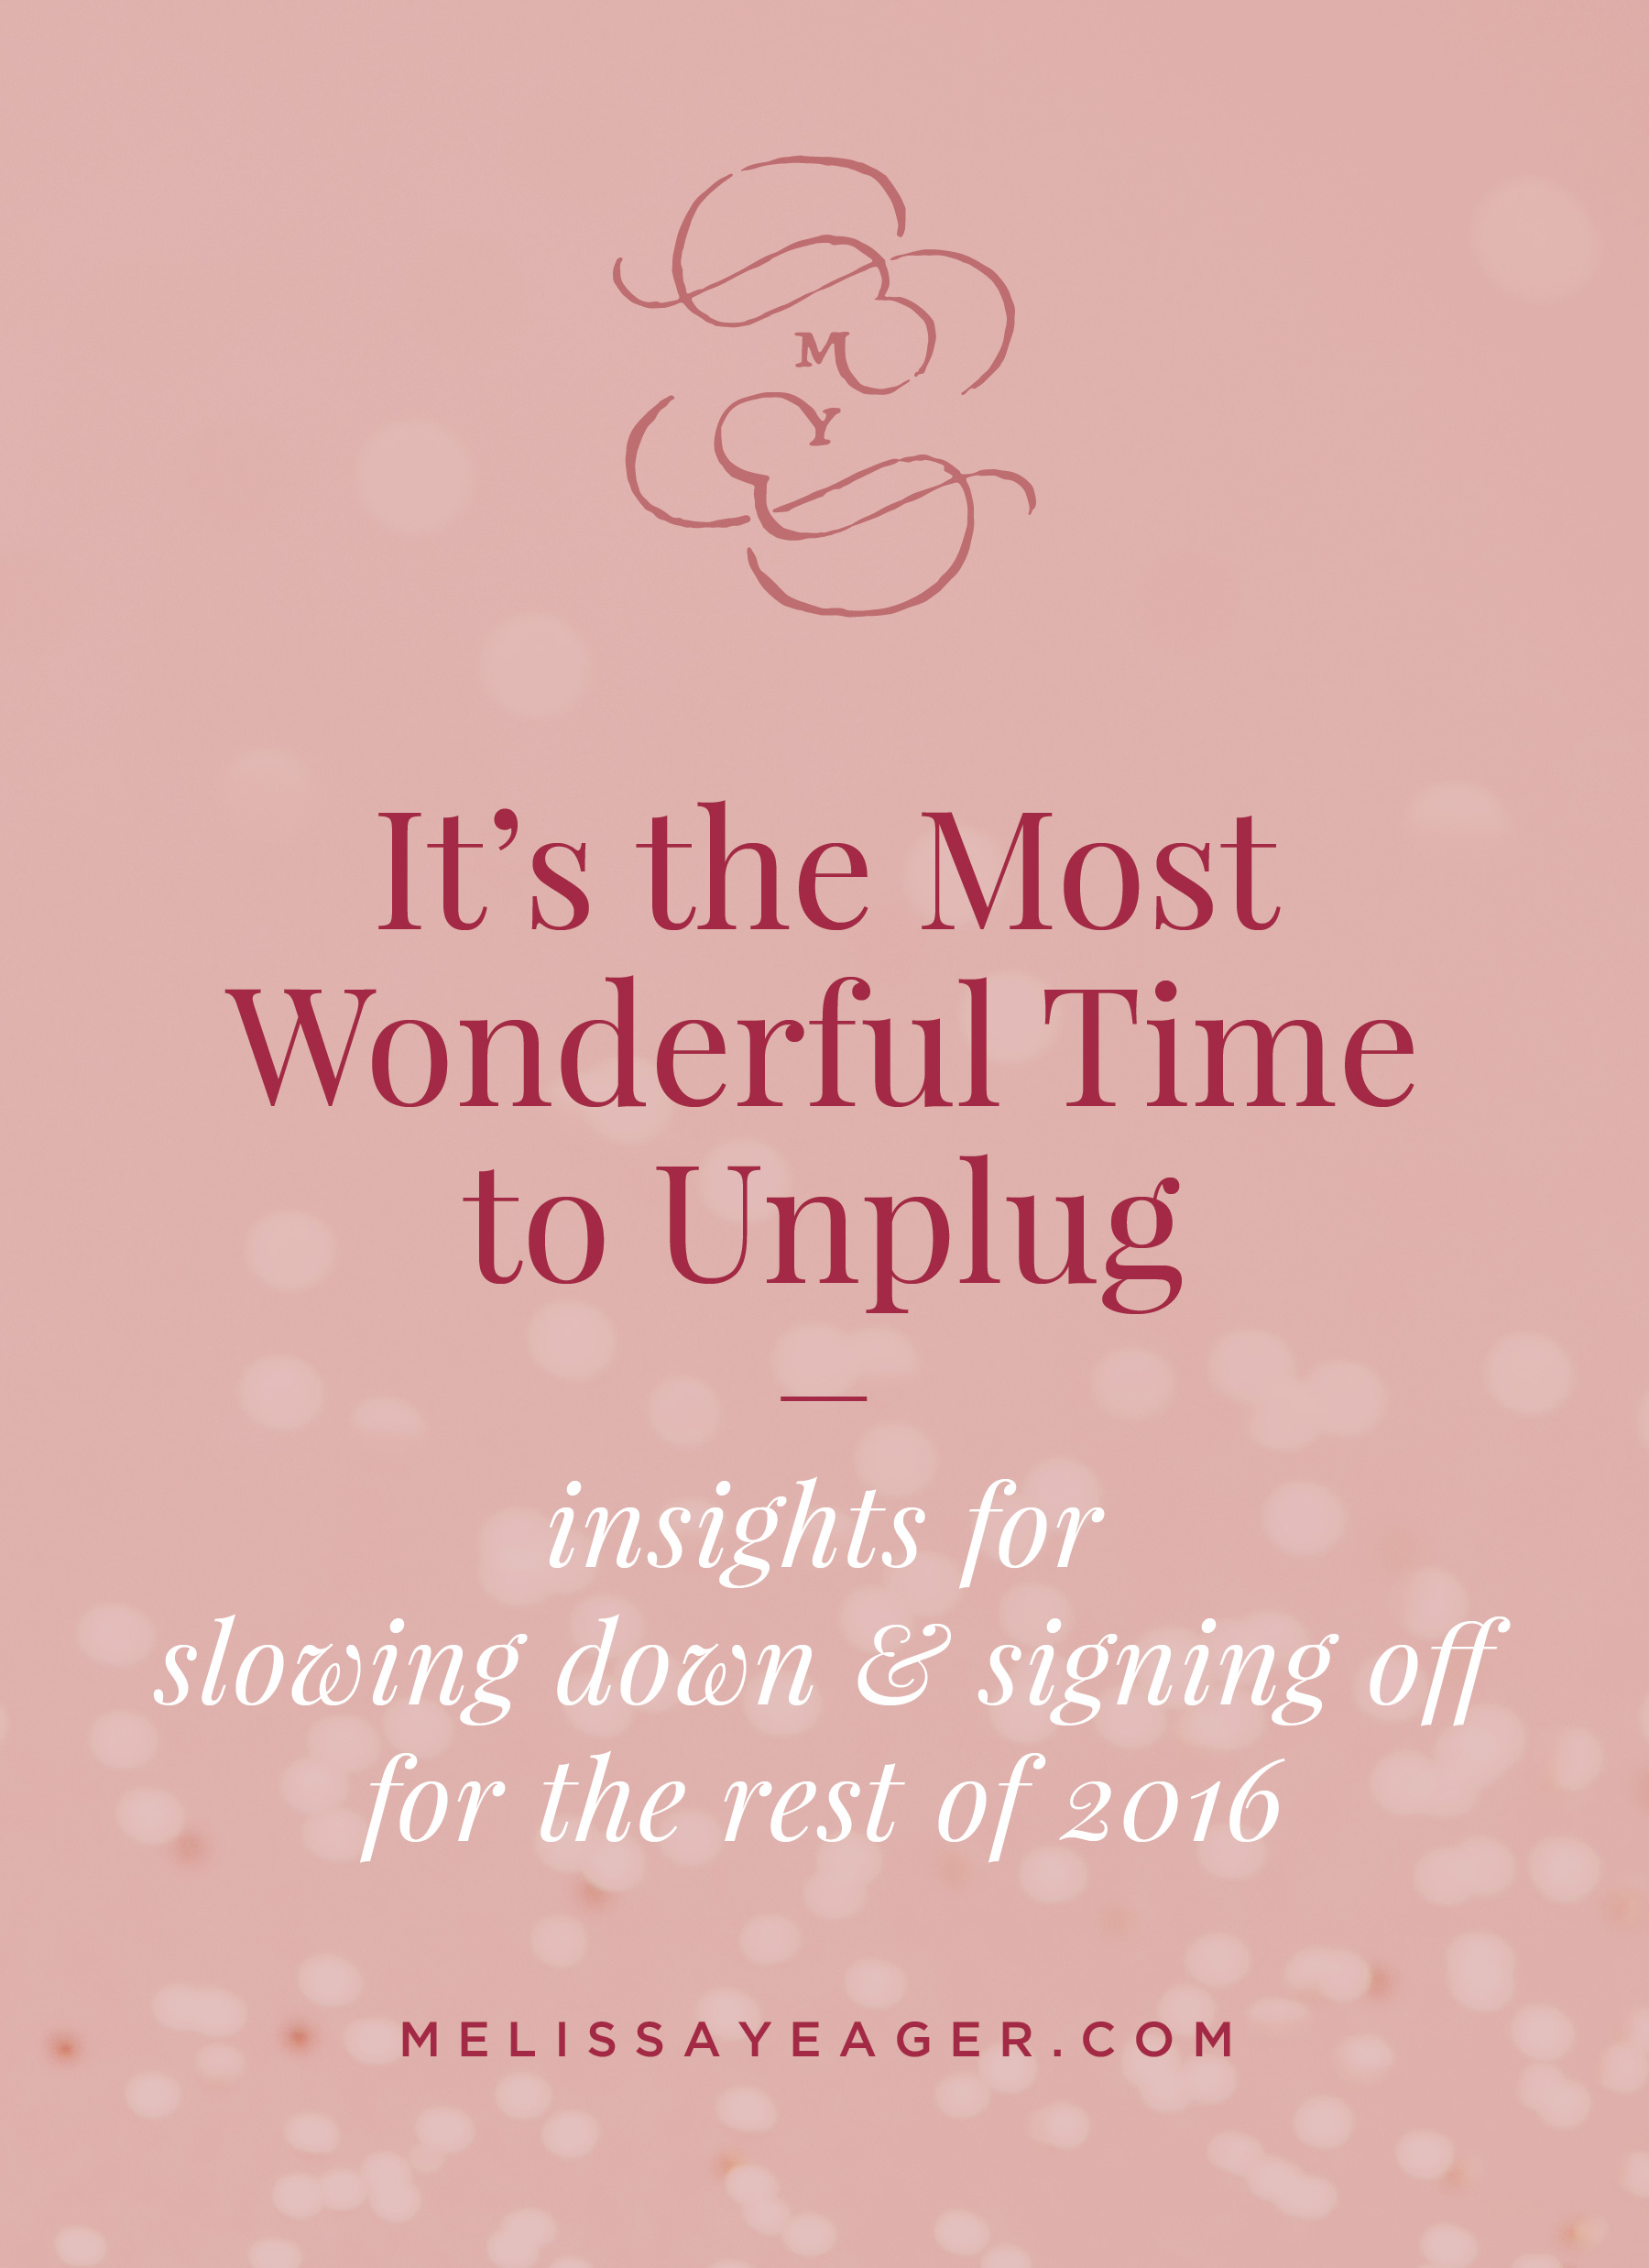 It's the Most Wonderful Time to Unplug - insights for slowing down & signing off for the rest of 2016